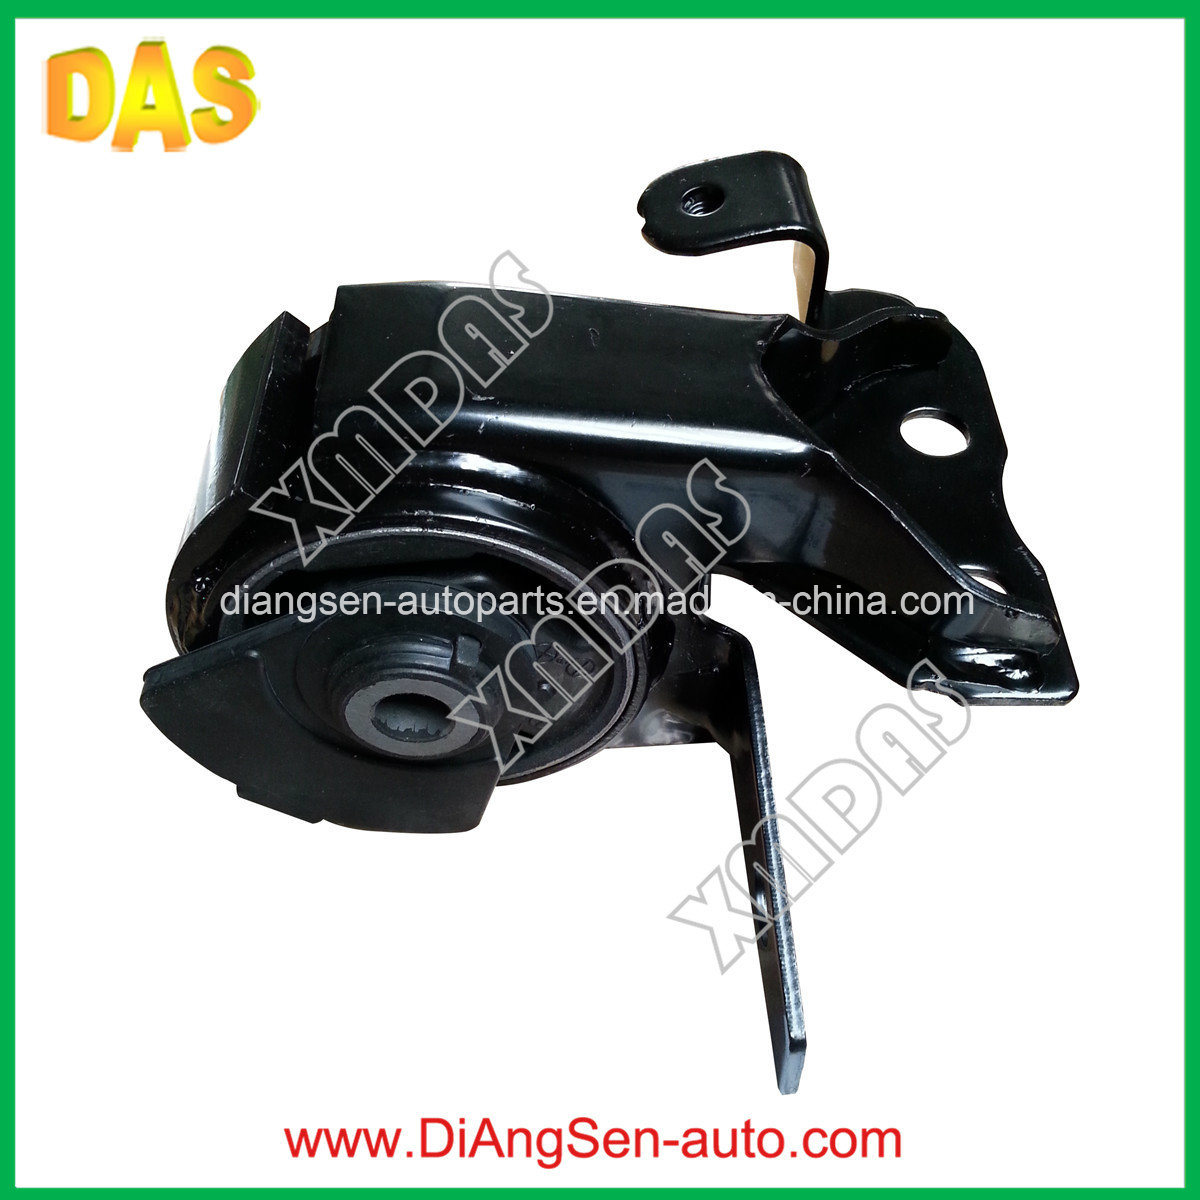 hight resolution of china japanese car auto spare parts engine mounting for mazda protege b25e 39 070 china auto parts engine mounting